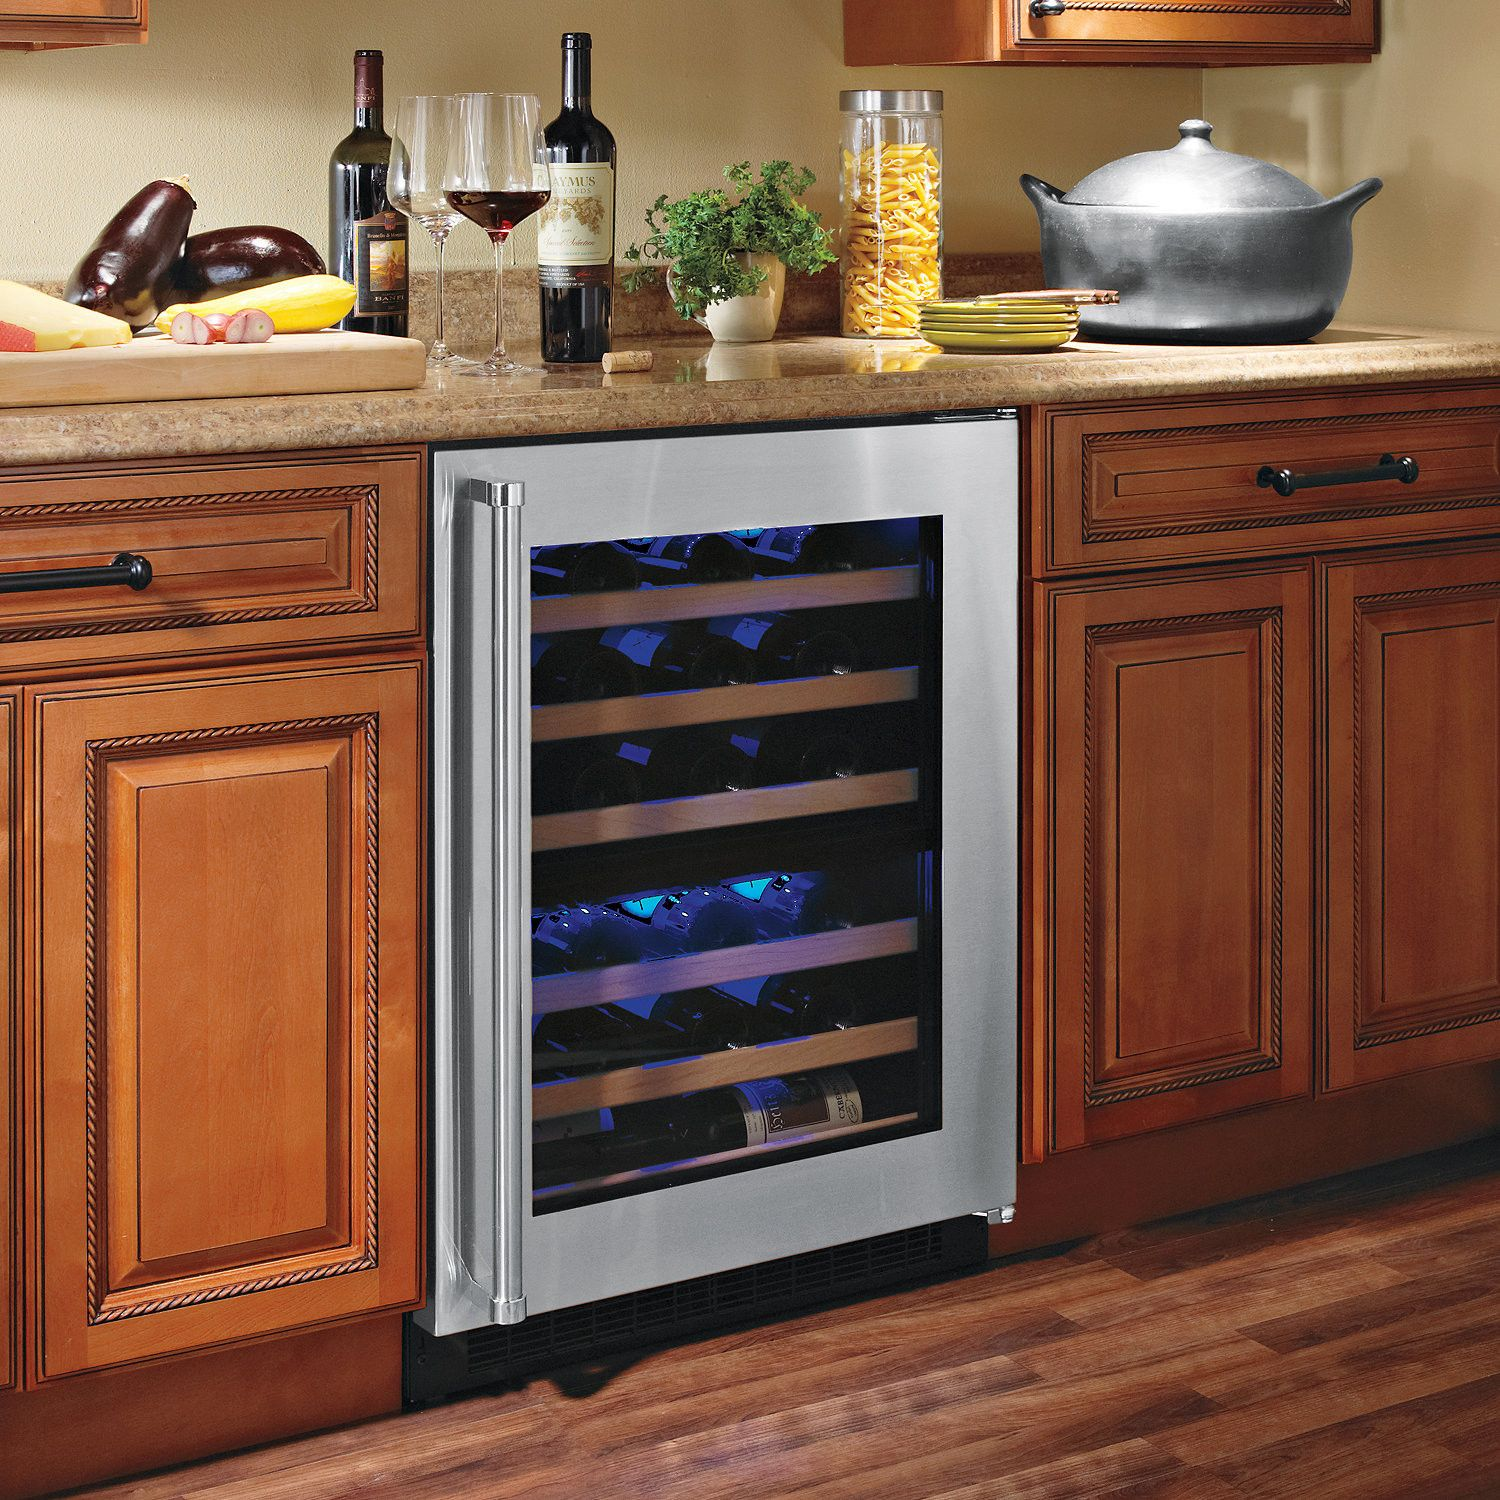 countertops appliances uline floor wooden countertop kitchen cooler ideas your undercounter cool marble for and white frigidaire wine marvel with refrigerator fridge